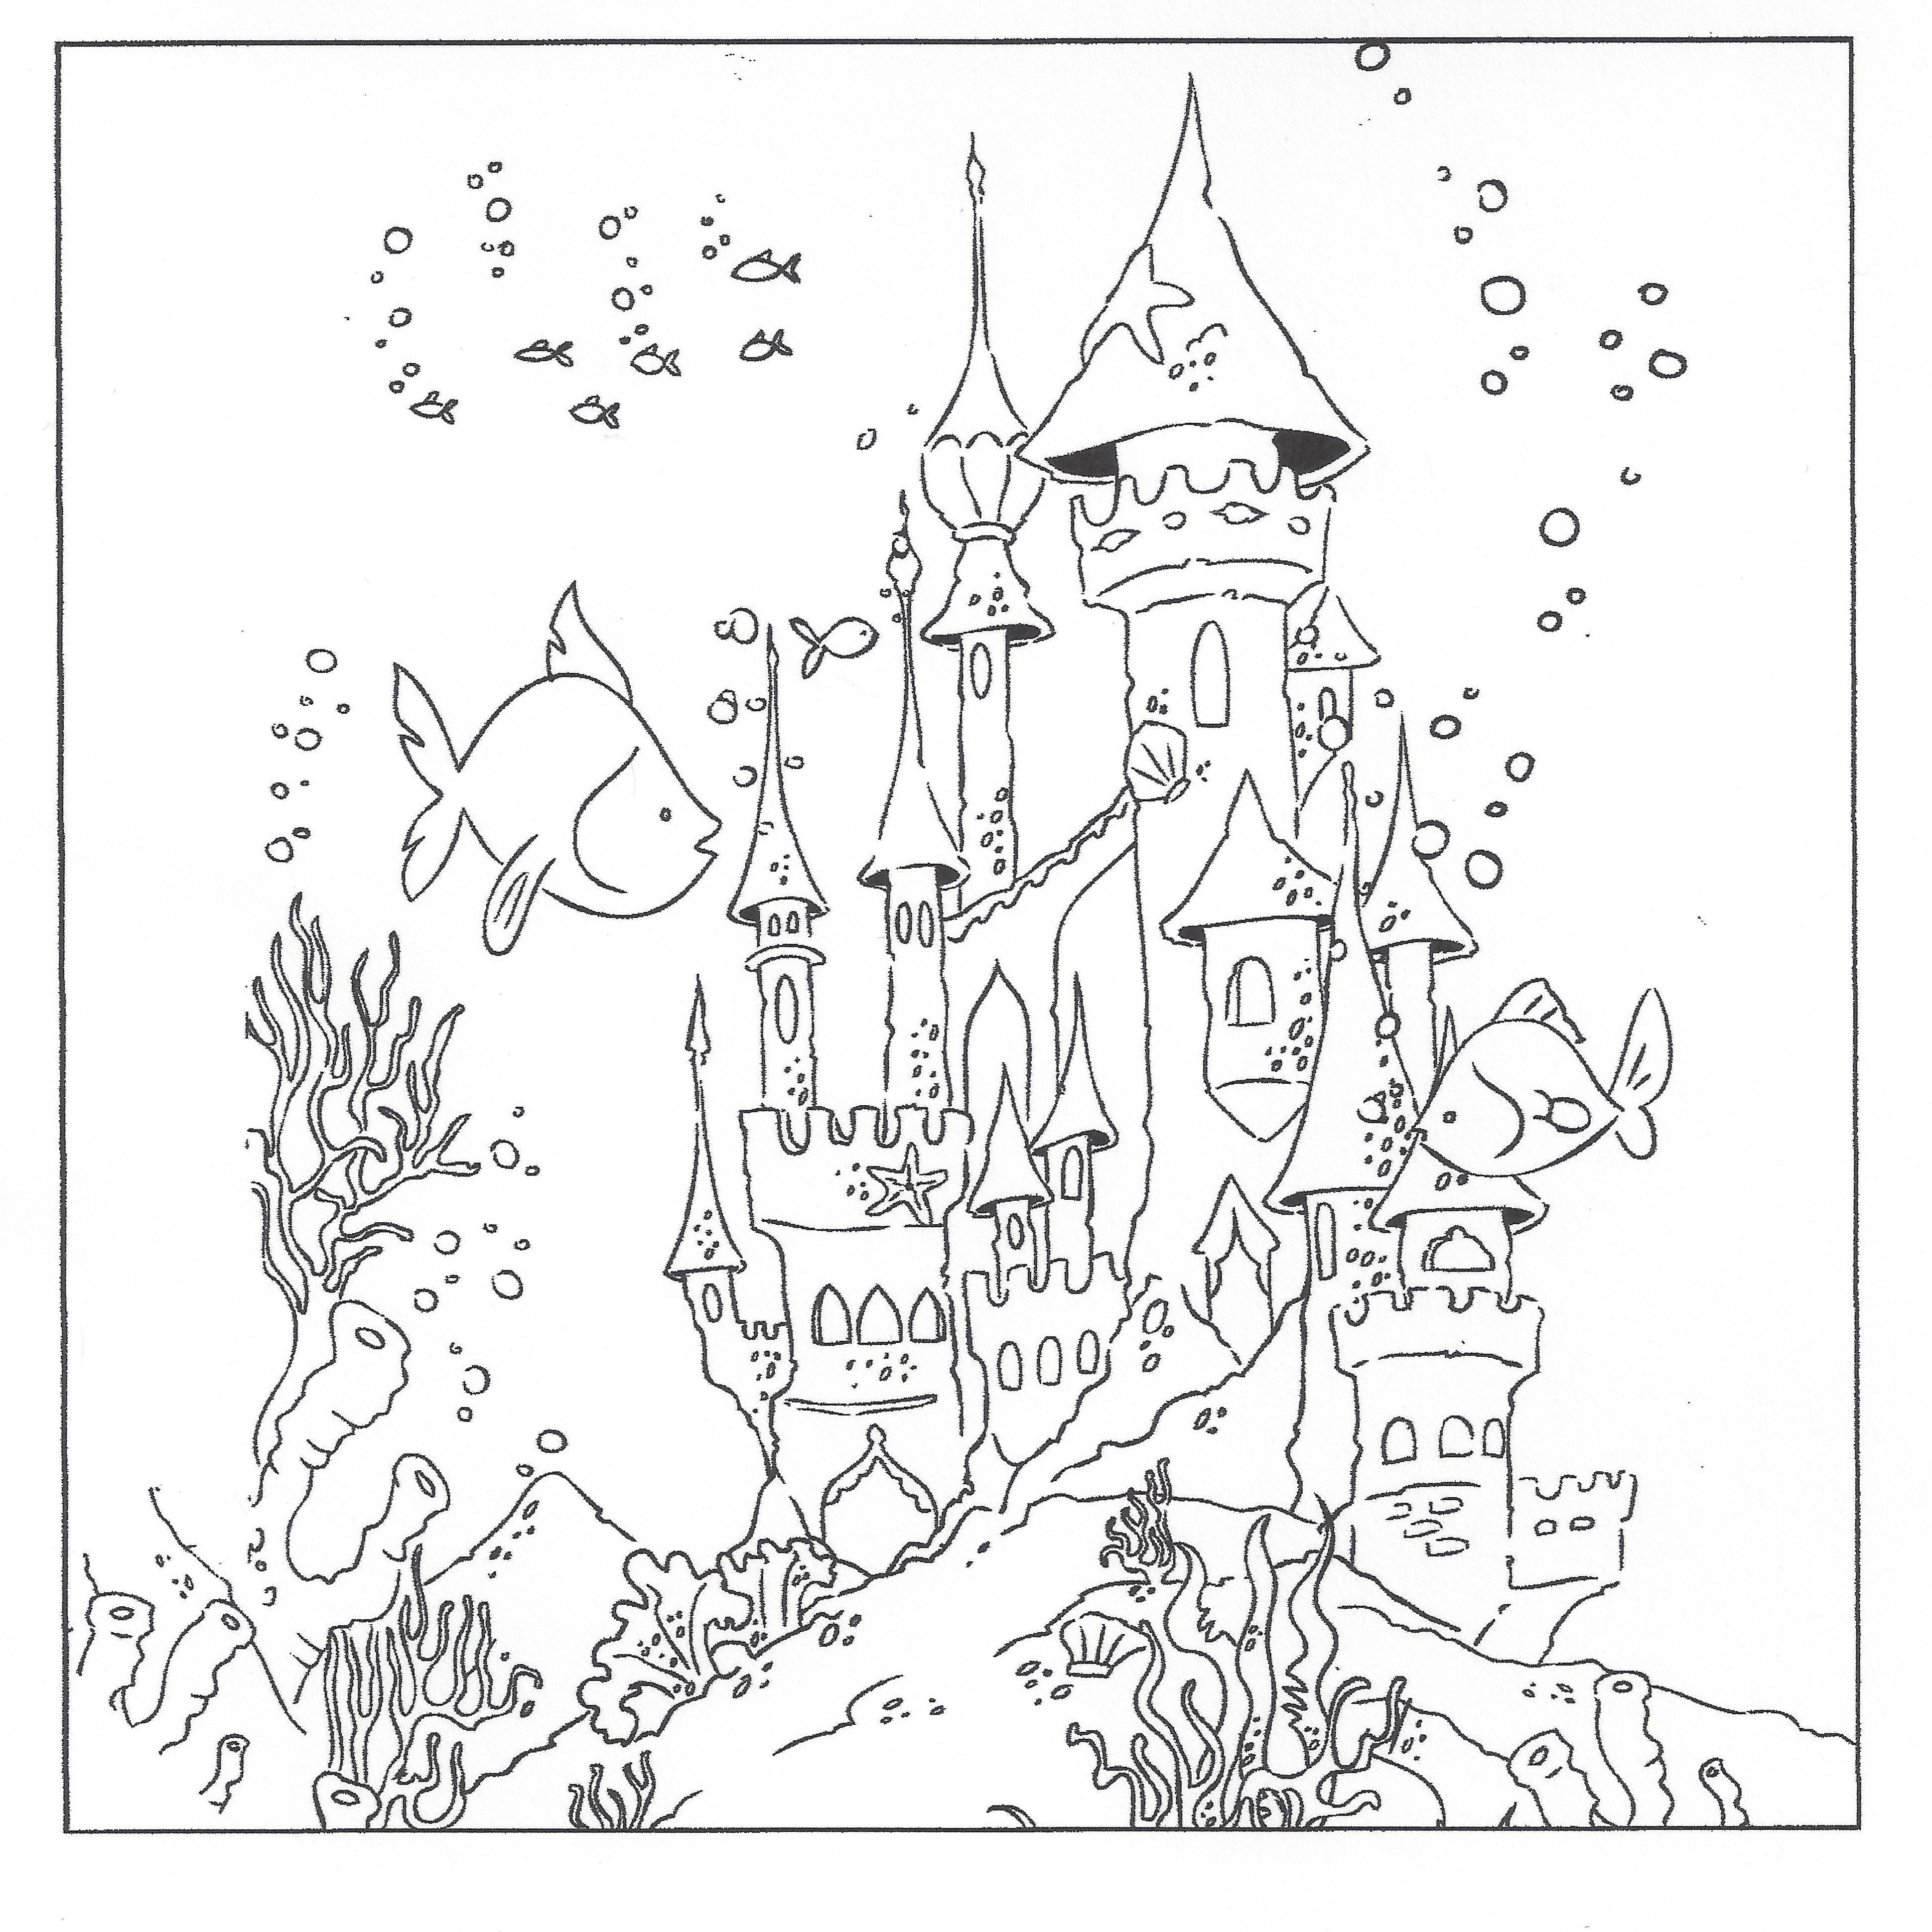 Underwater colouring - Find This Pin And More On Coloring Pages By Cmrlslibrary Underwater Coloring Pages